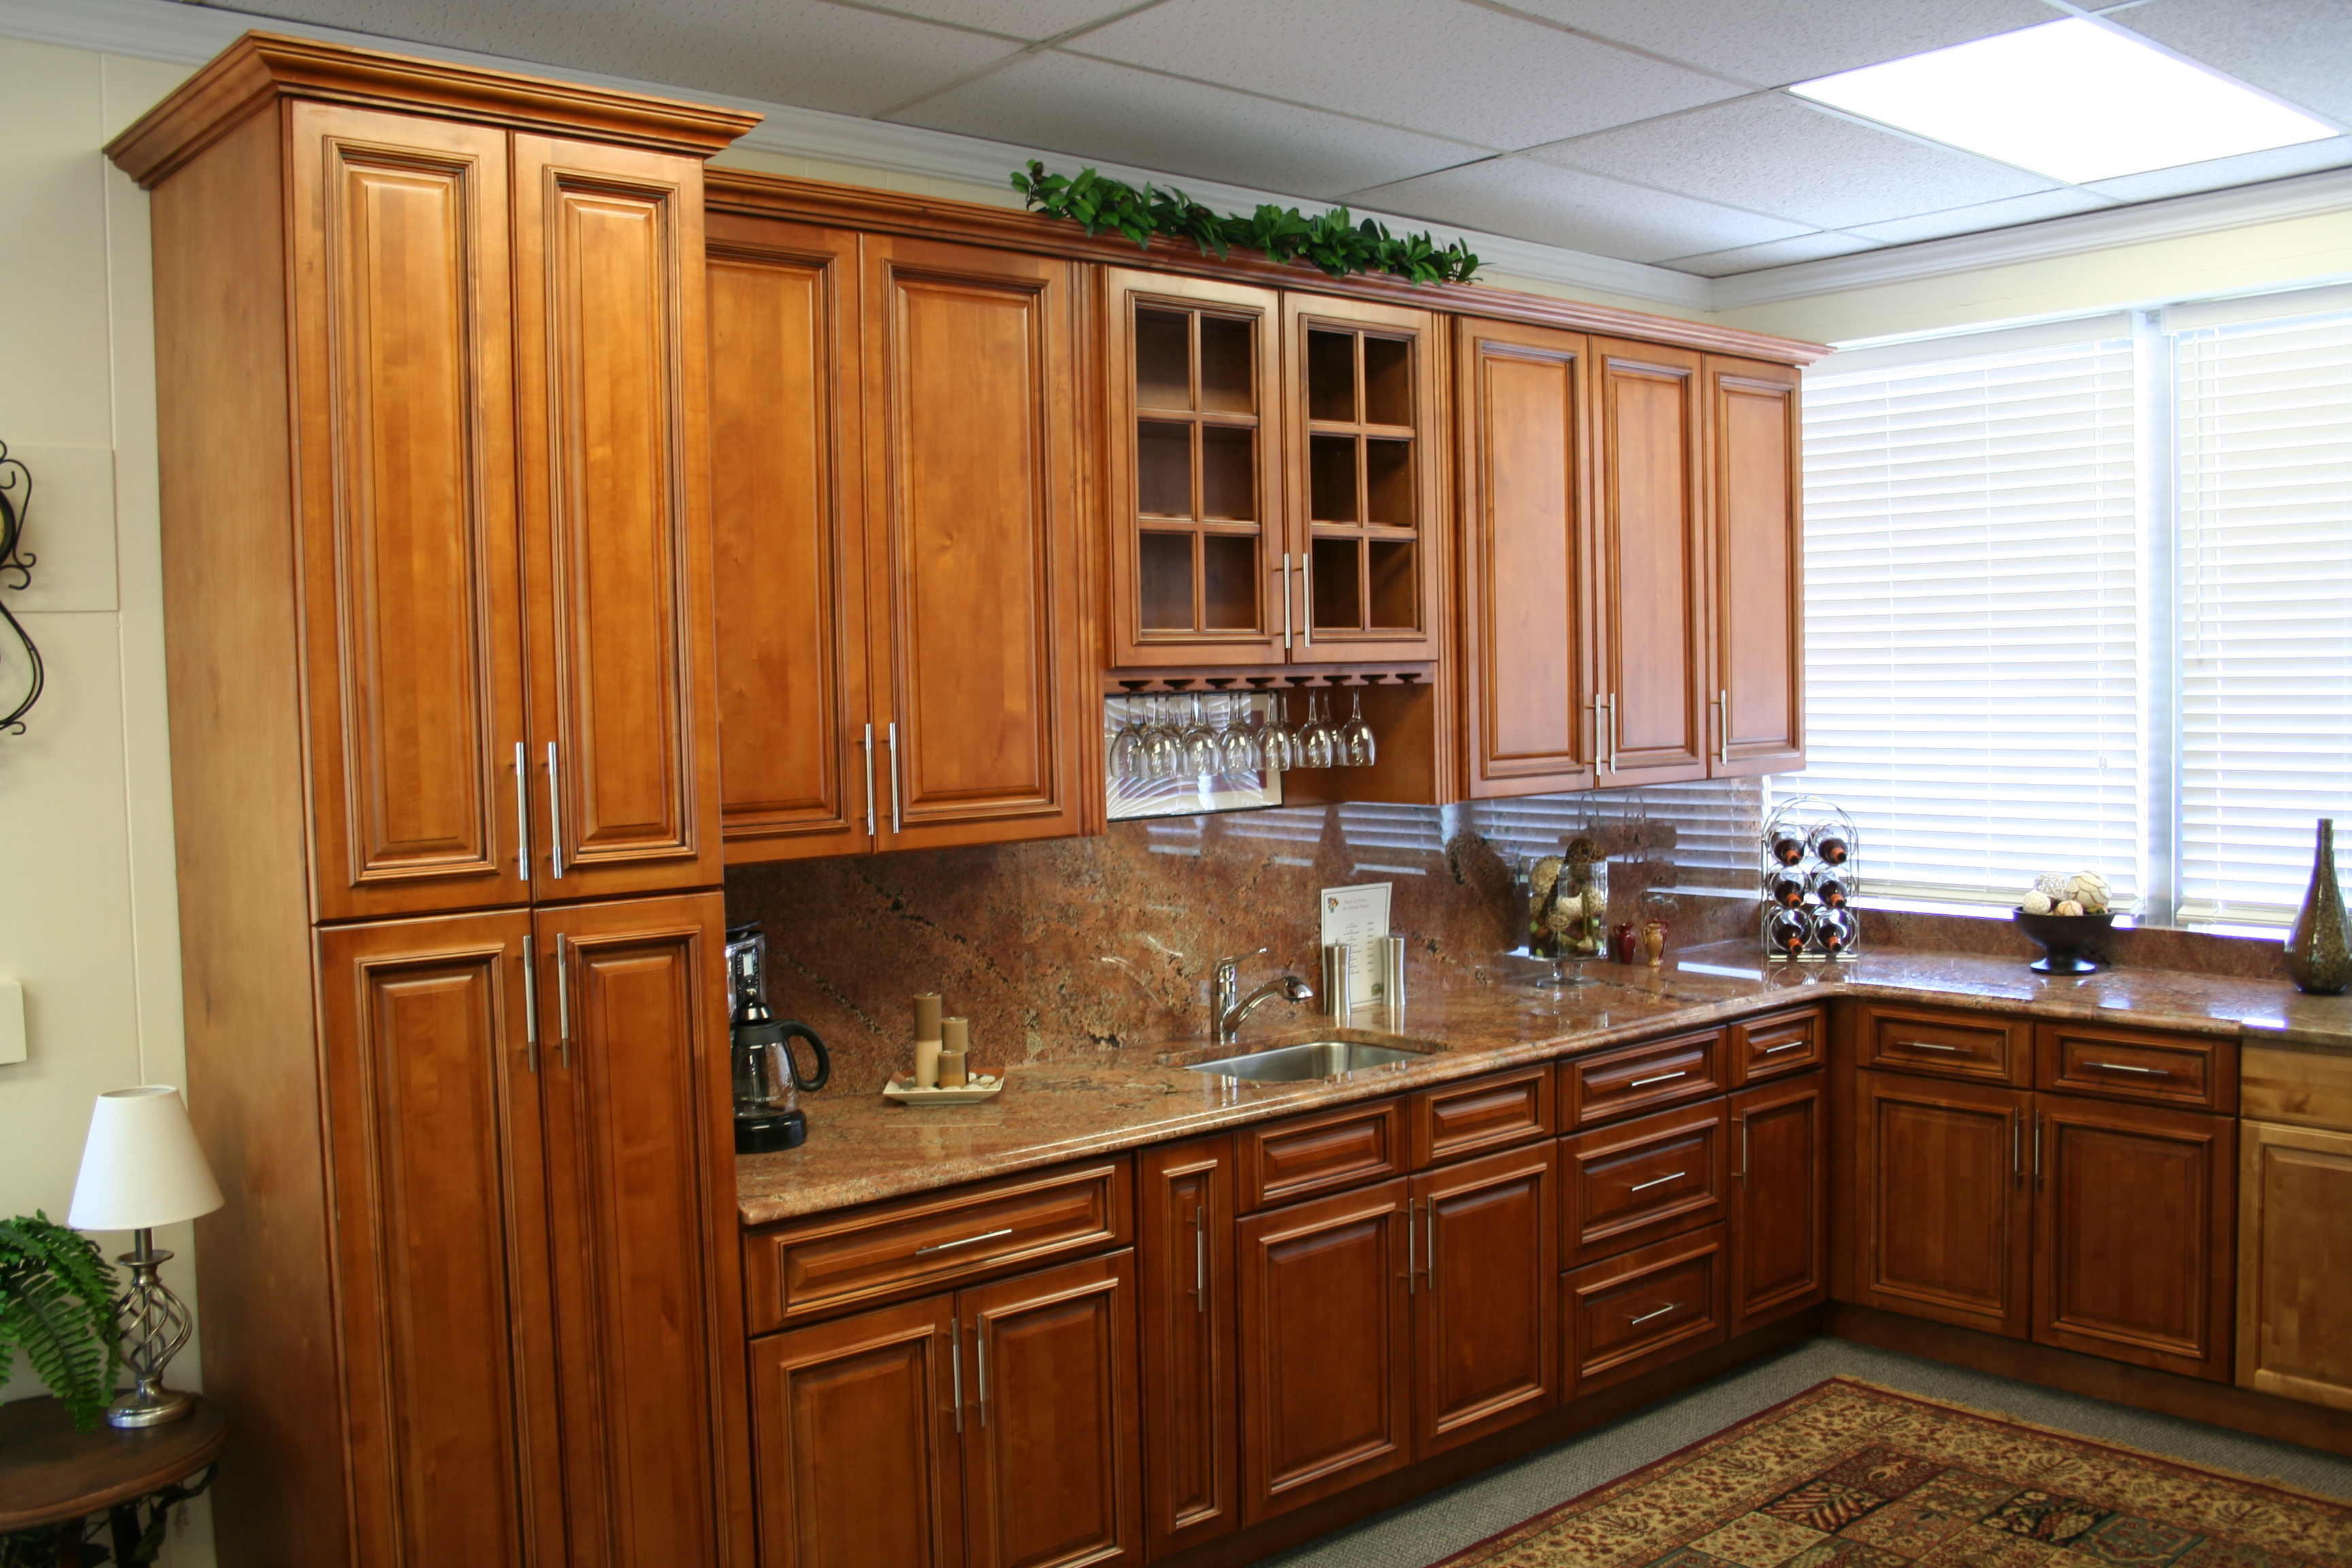 Glazed Maple Cabinets | Cabinets and Granite on Backsplash For Maple Cabinets And Black Granite  id=49772